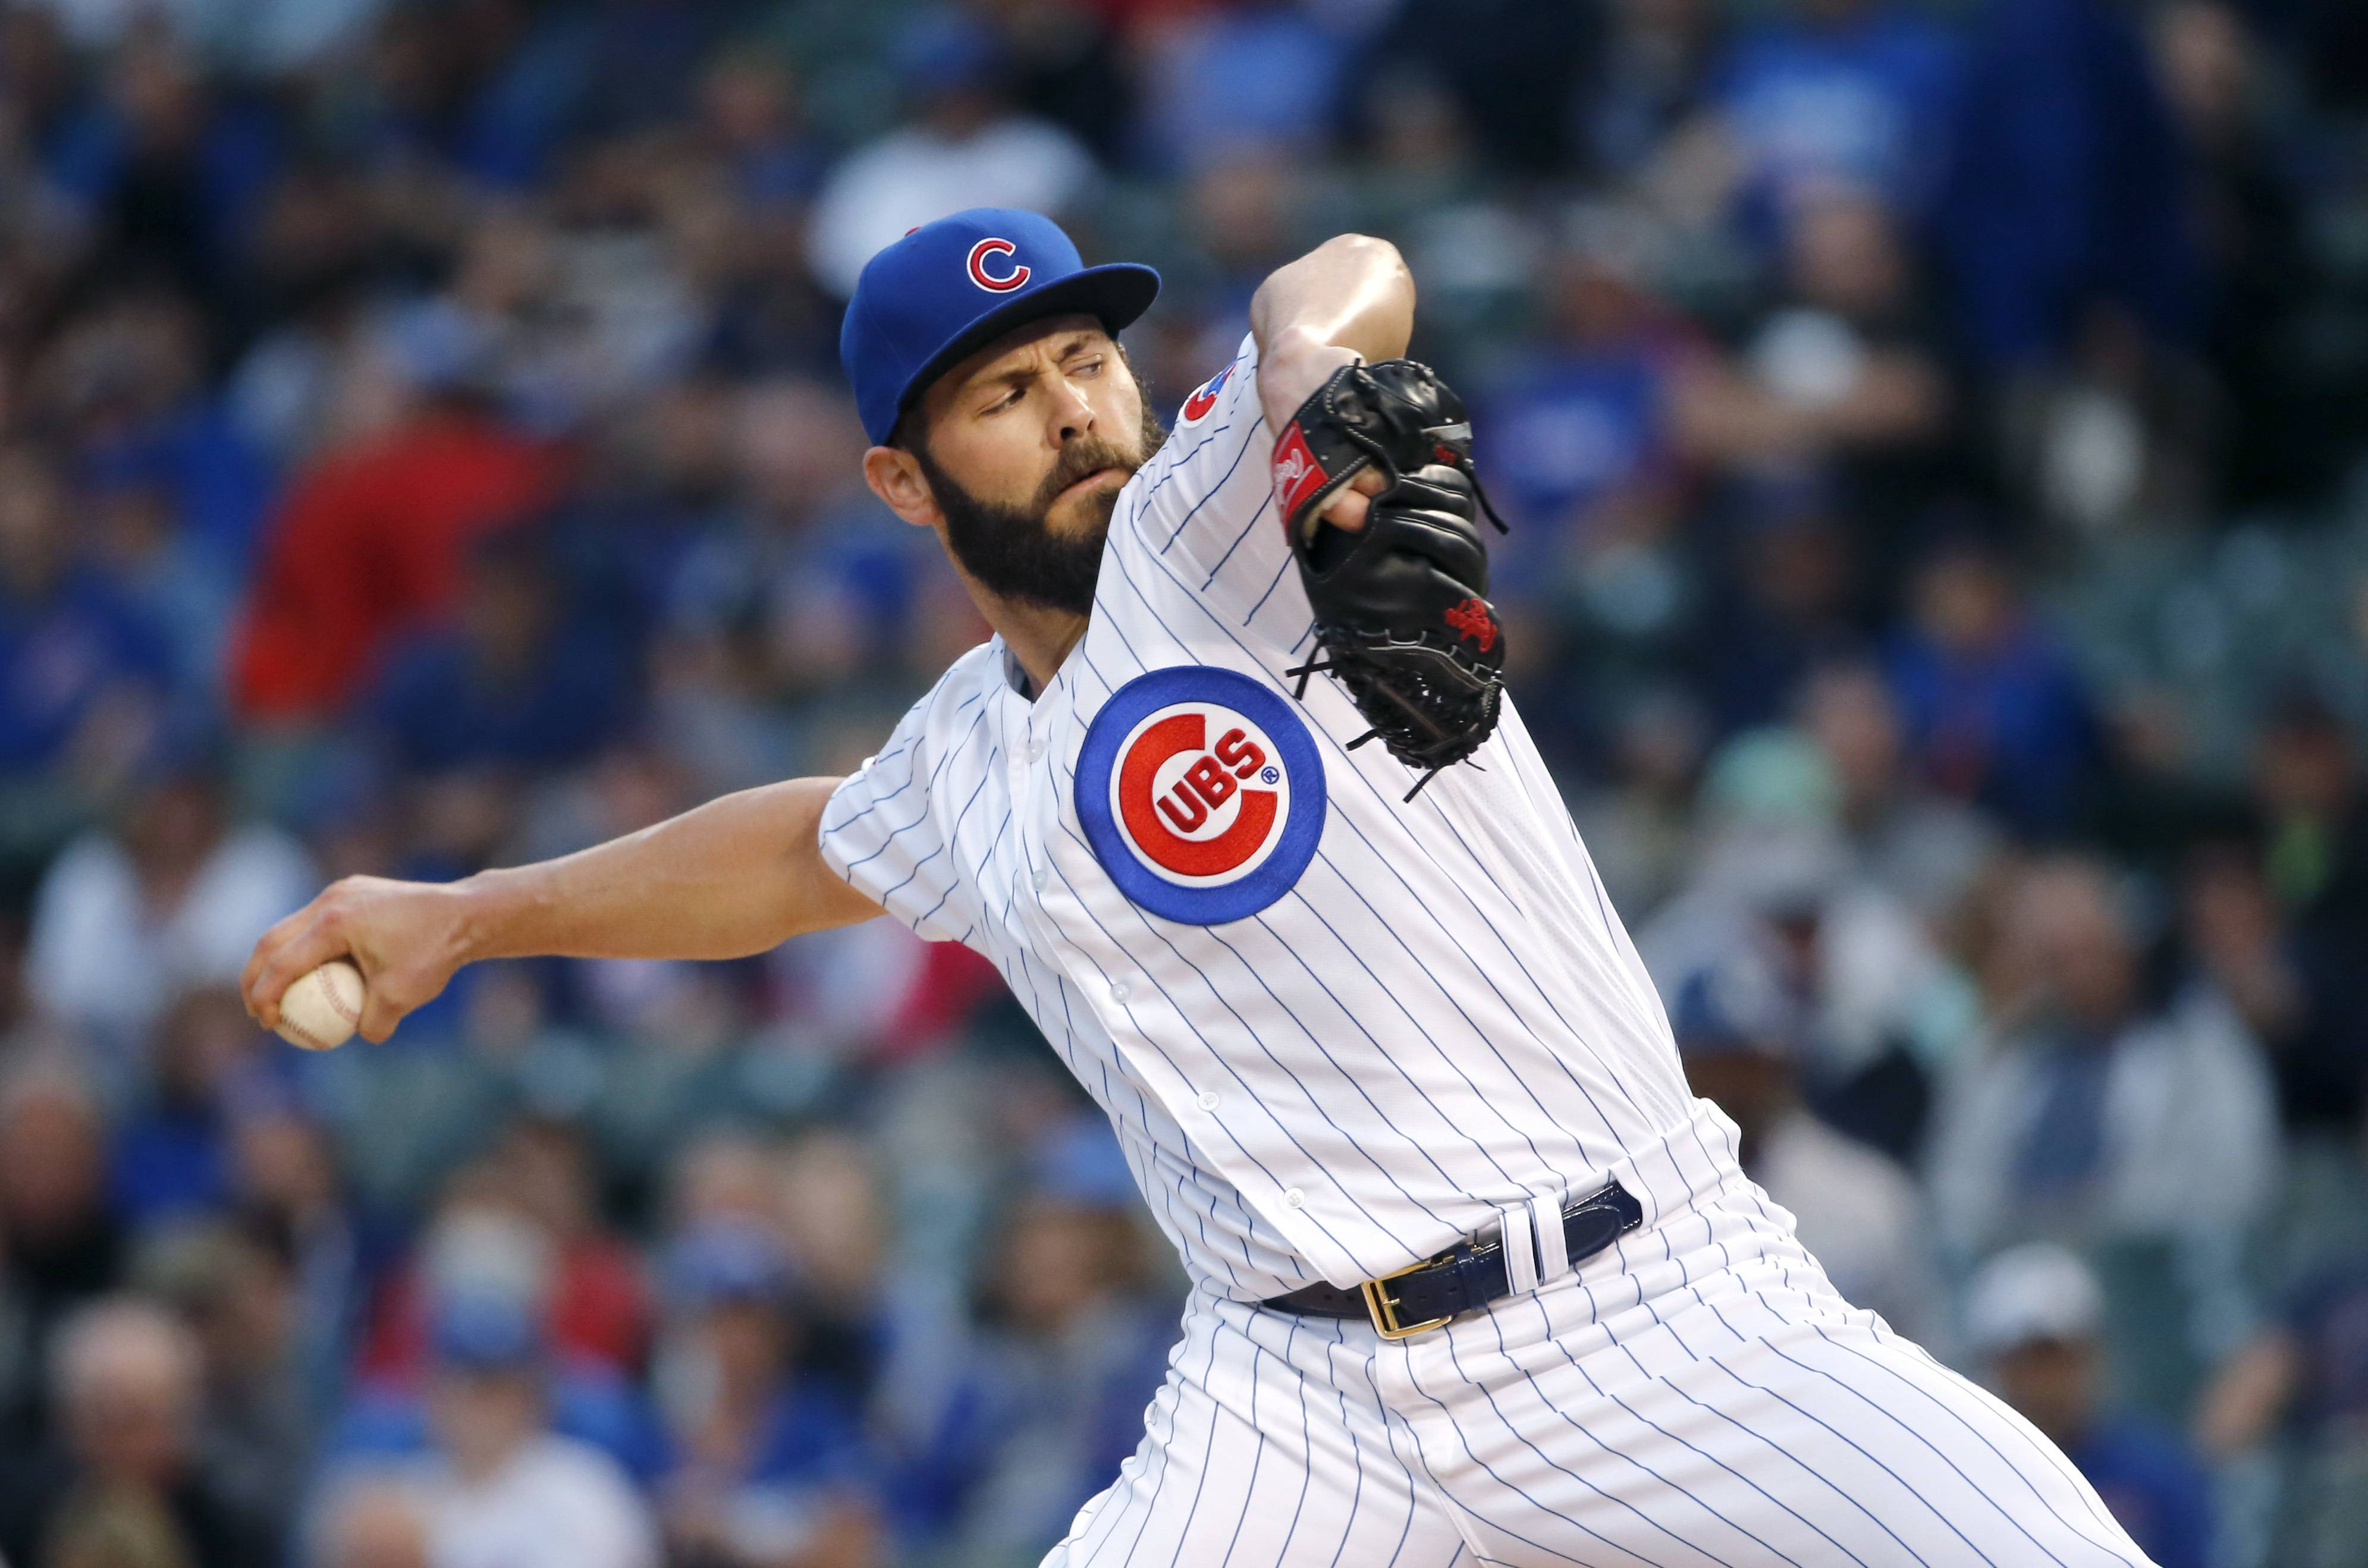 Expected to leave the Cubs as a free agent this winter, Jake Arrieta can exit on a high note with a strong start against the Los Angeles Dodgers in Game 4 of the NLCS tonight.